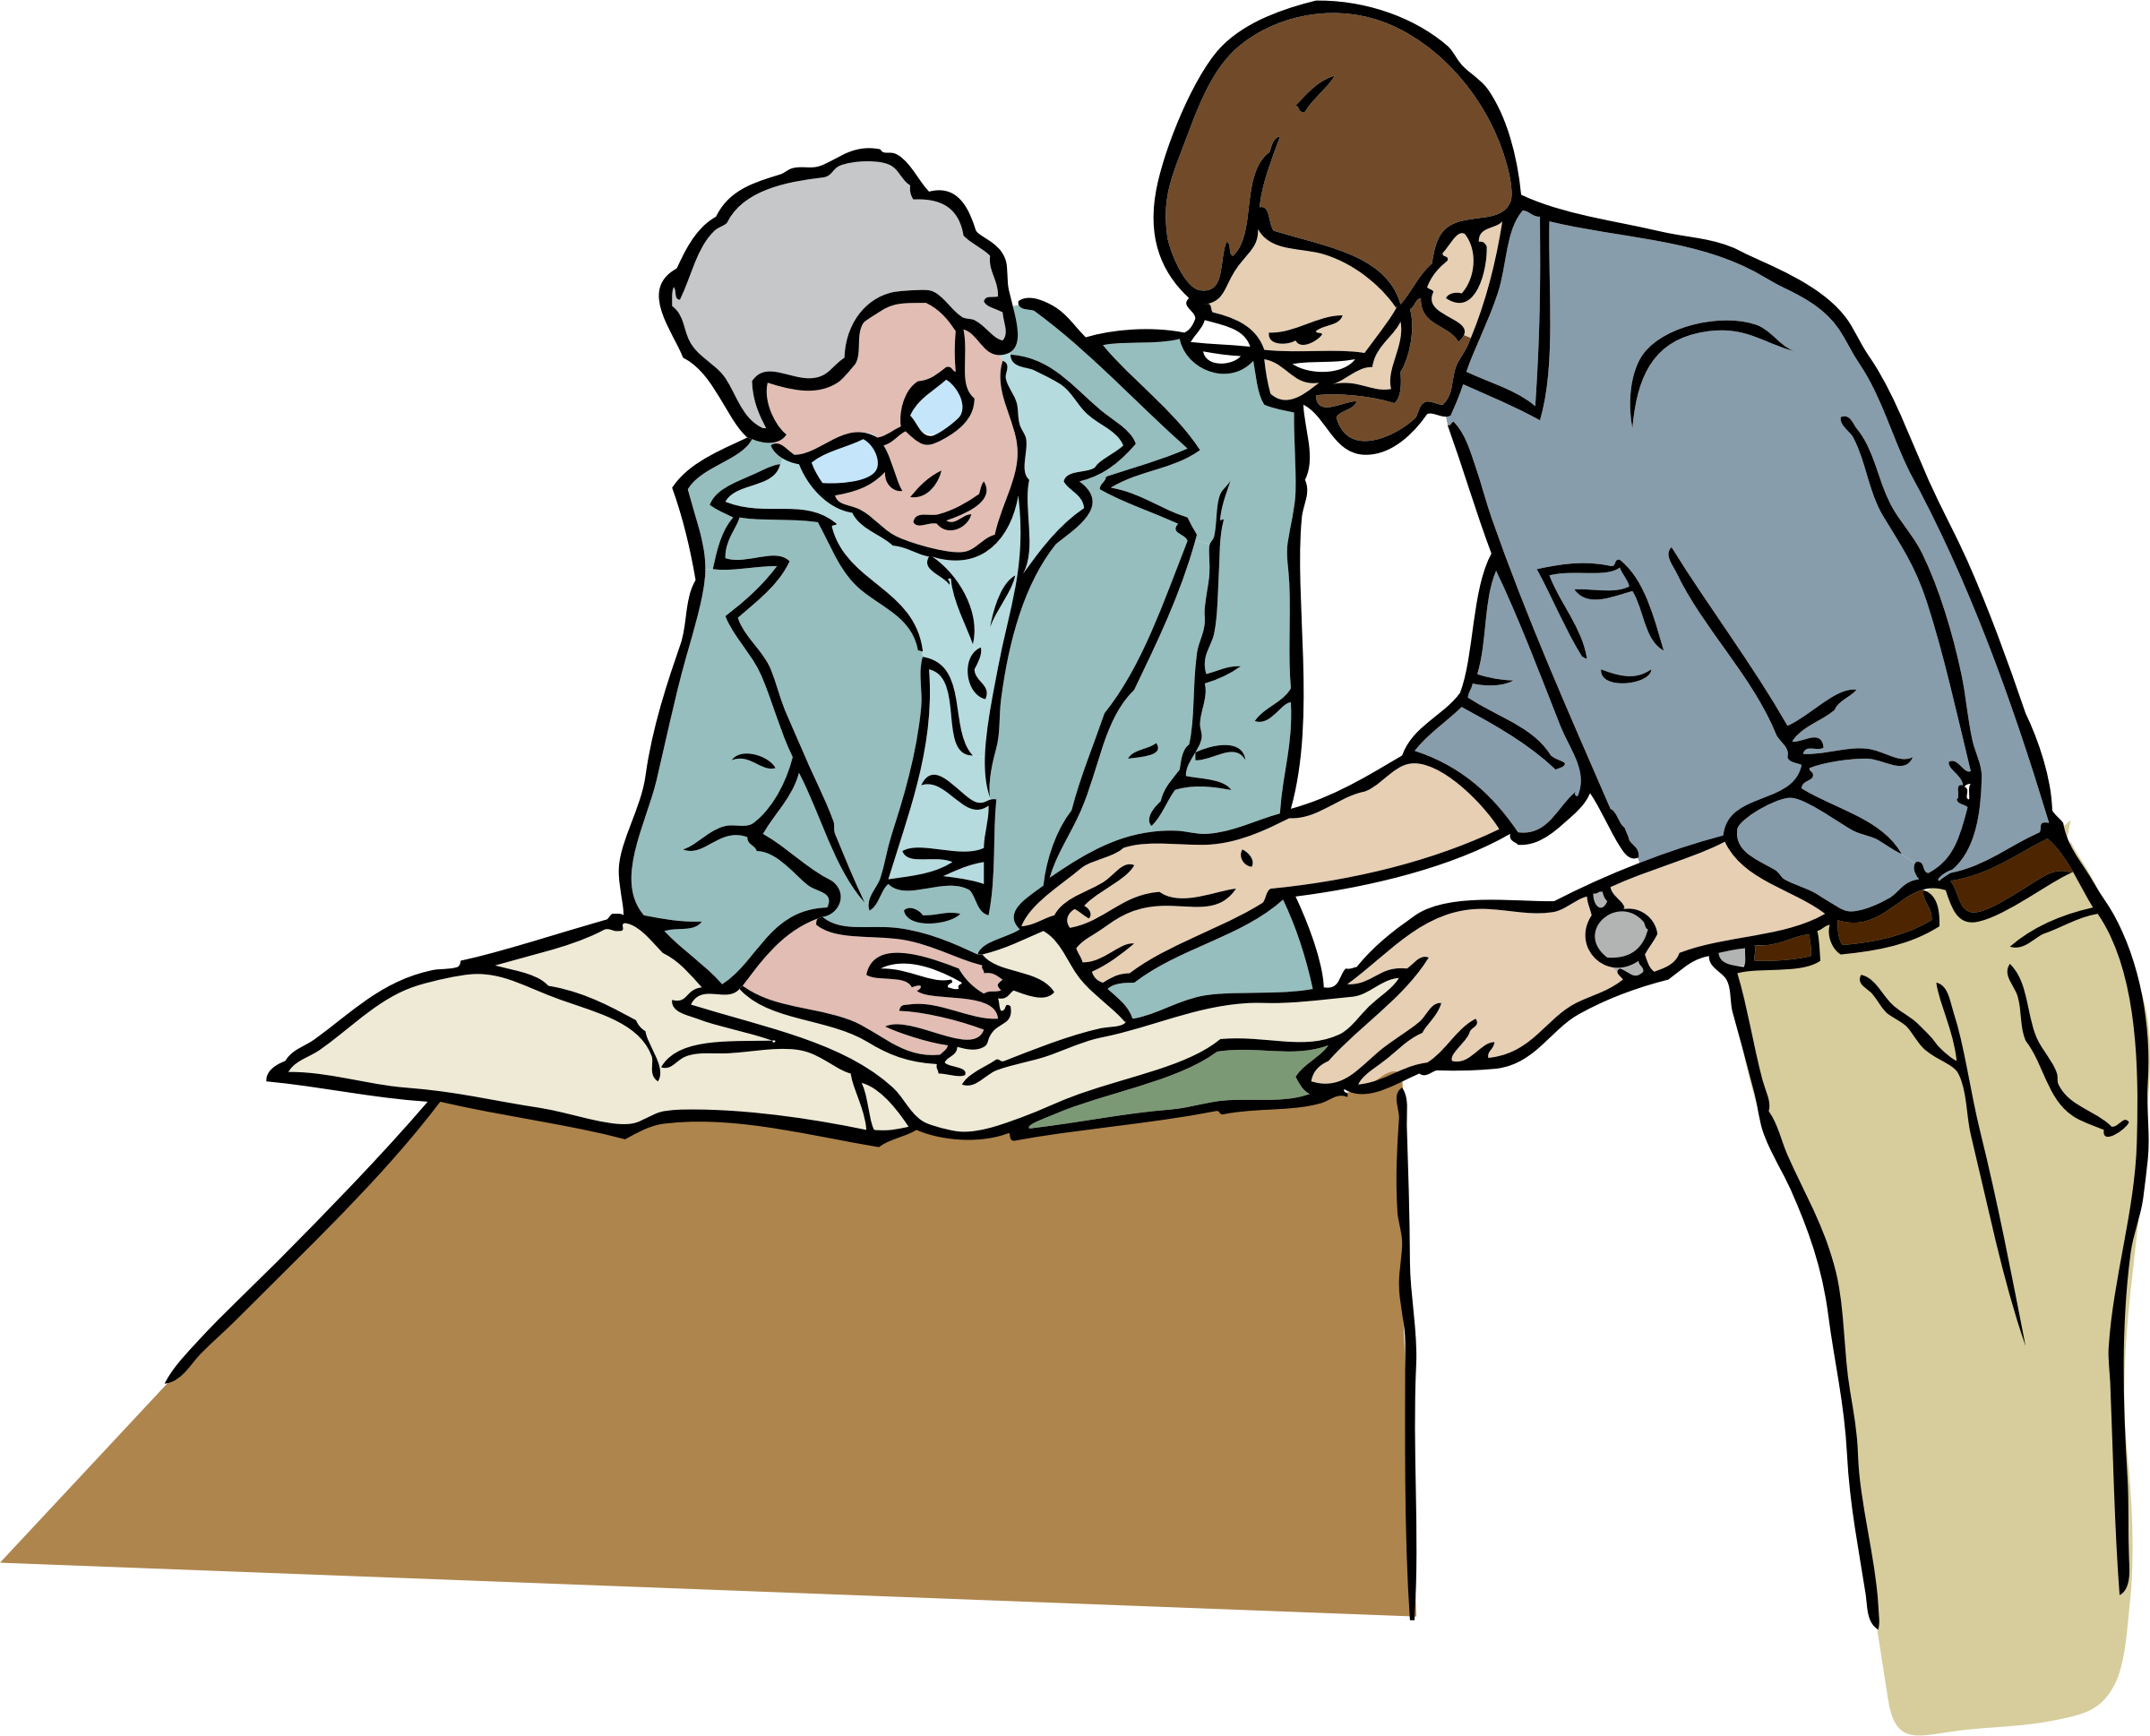 Working clipart office work. Reference desk icons png